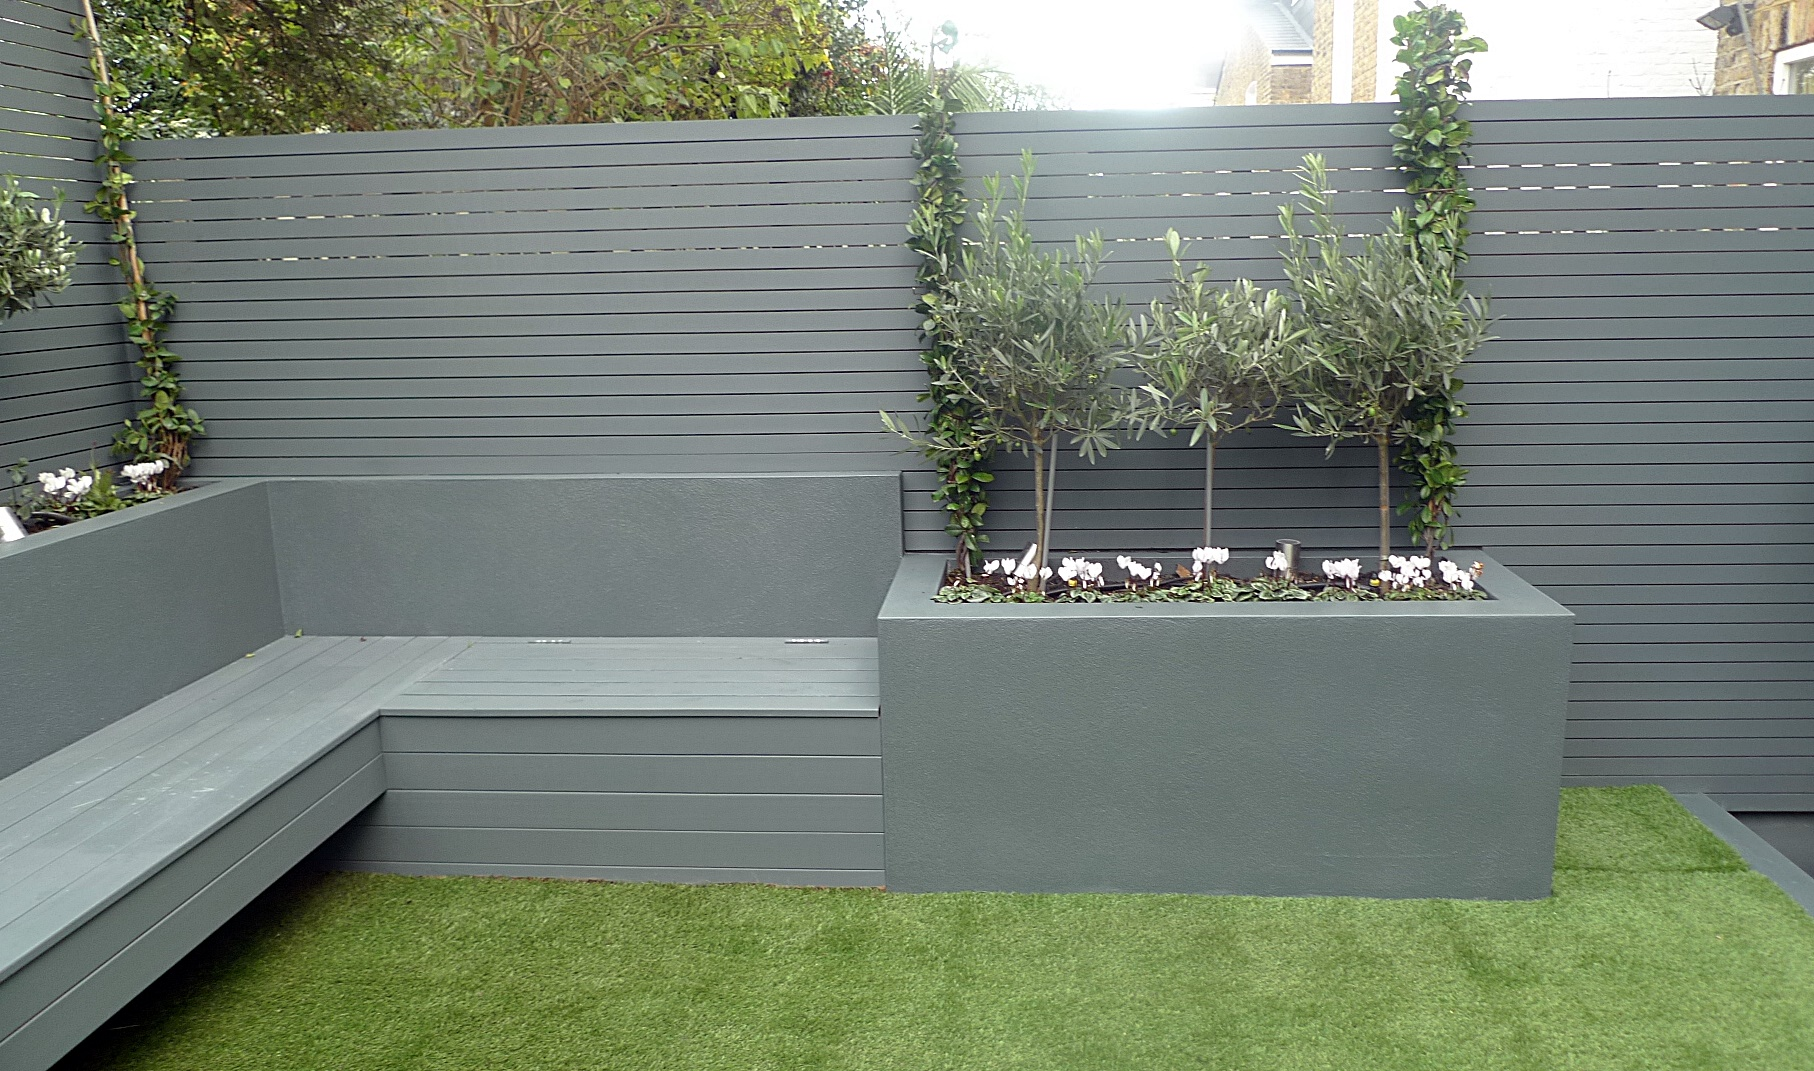 Grey colour scheme artificial grass raised beds porcelain grey tiles grey Floating bench agapanthus olives yellow stock brick wall Clapham Balham Wandsworth Battersea Fulham Chelsea London